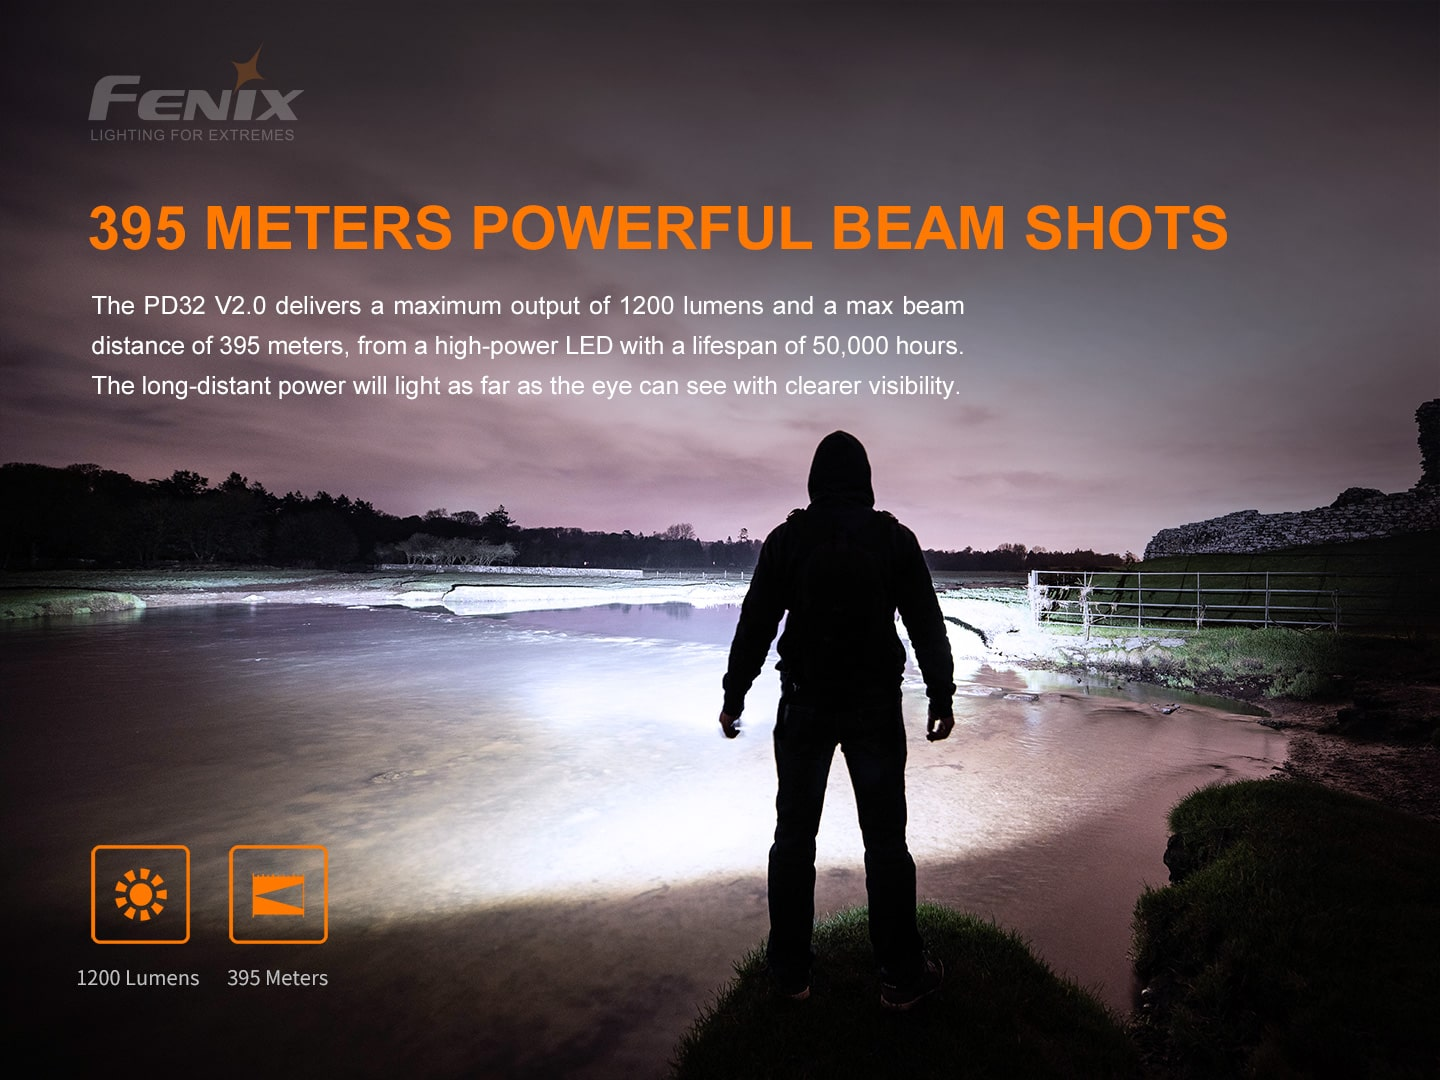 Buy Fenix PD32 V2 LED Flashlight in India, 1200 Lumens Extremely powerful LED Torch, EDC Light for outdoors, work, camping and trekking Torch